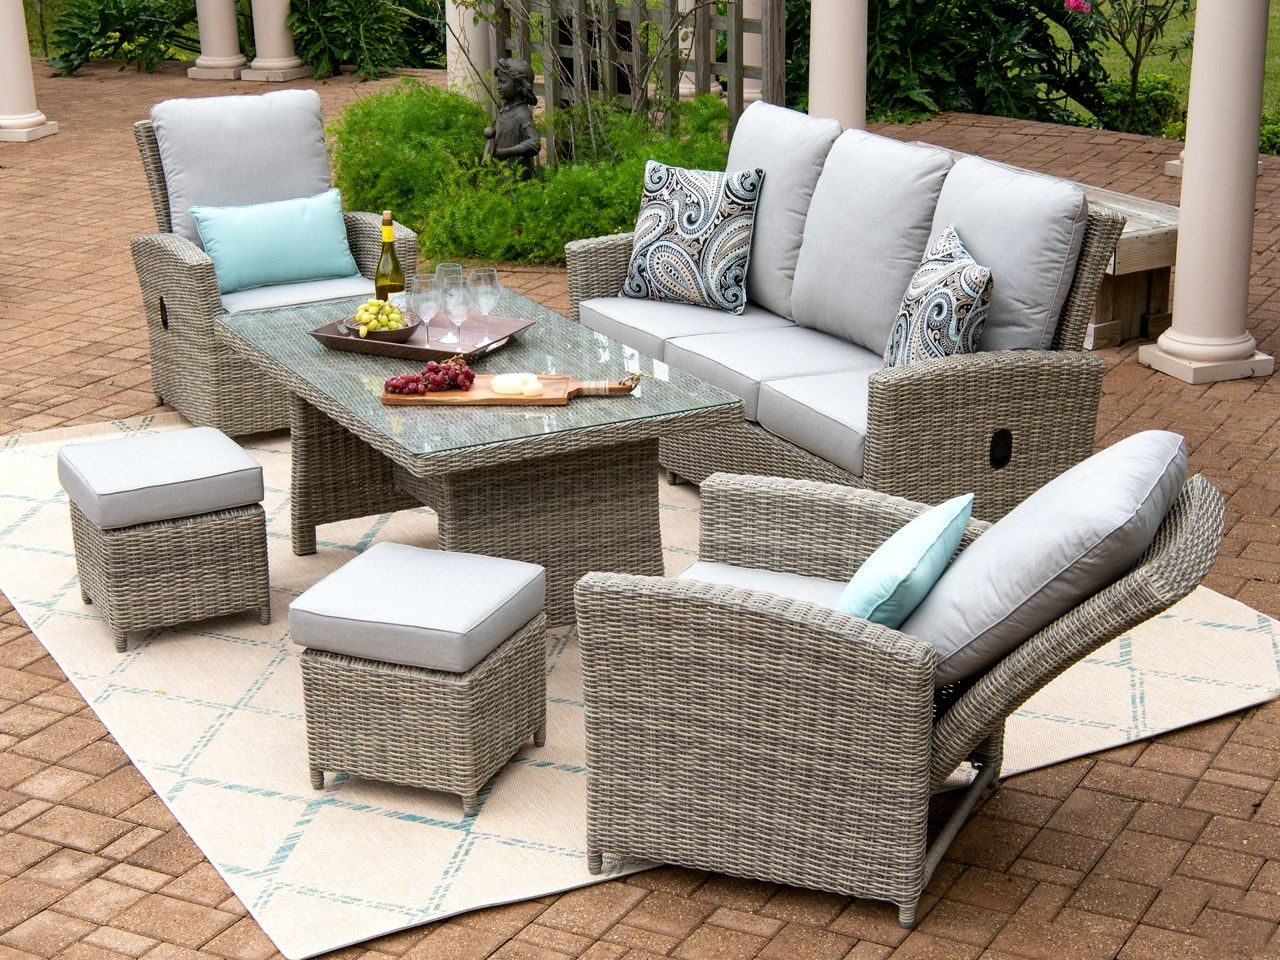 For A Stylish Solution To Your Outdoor Comfort Woes Look No Further Than Our Tuscany 6 Piece Set Find You In 2020 Pool Patio Furniture Outdoor Wicker Outdoor Comfort